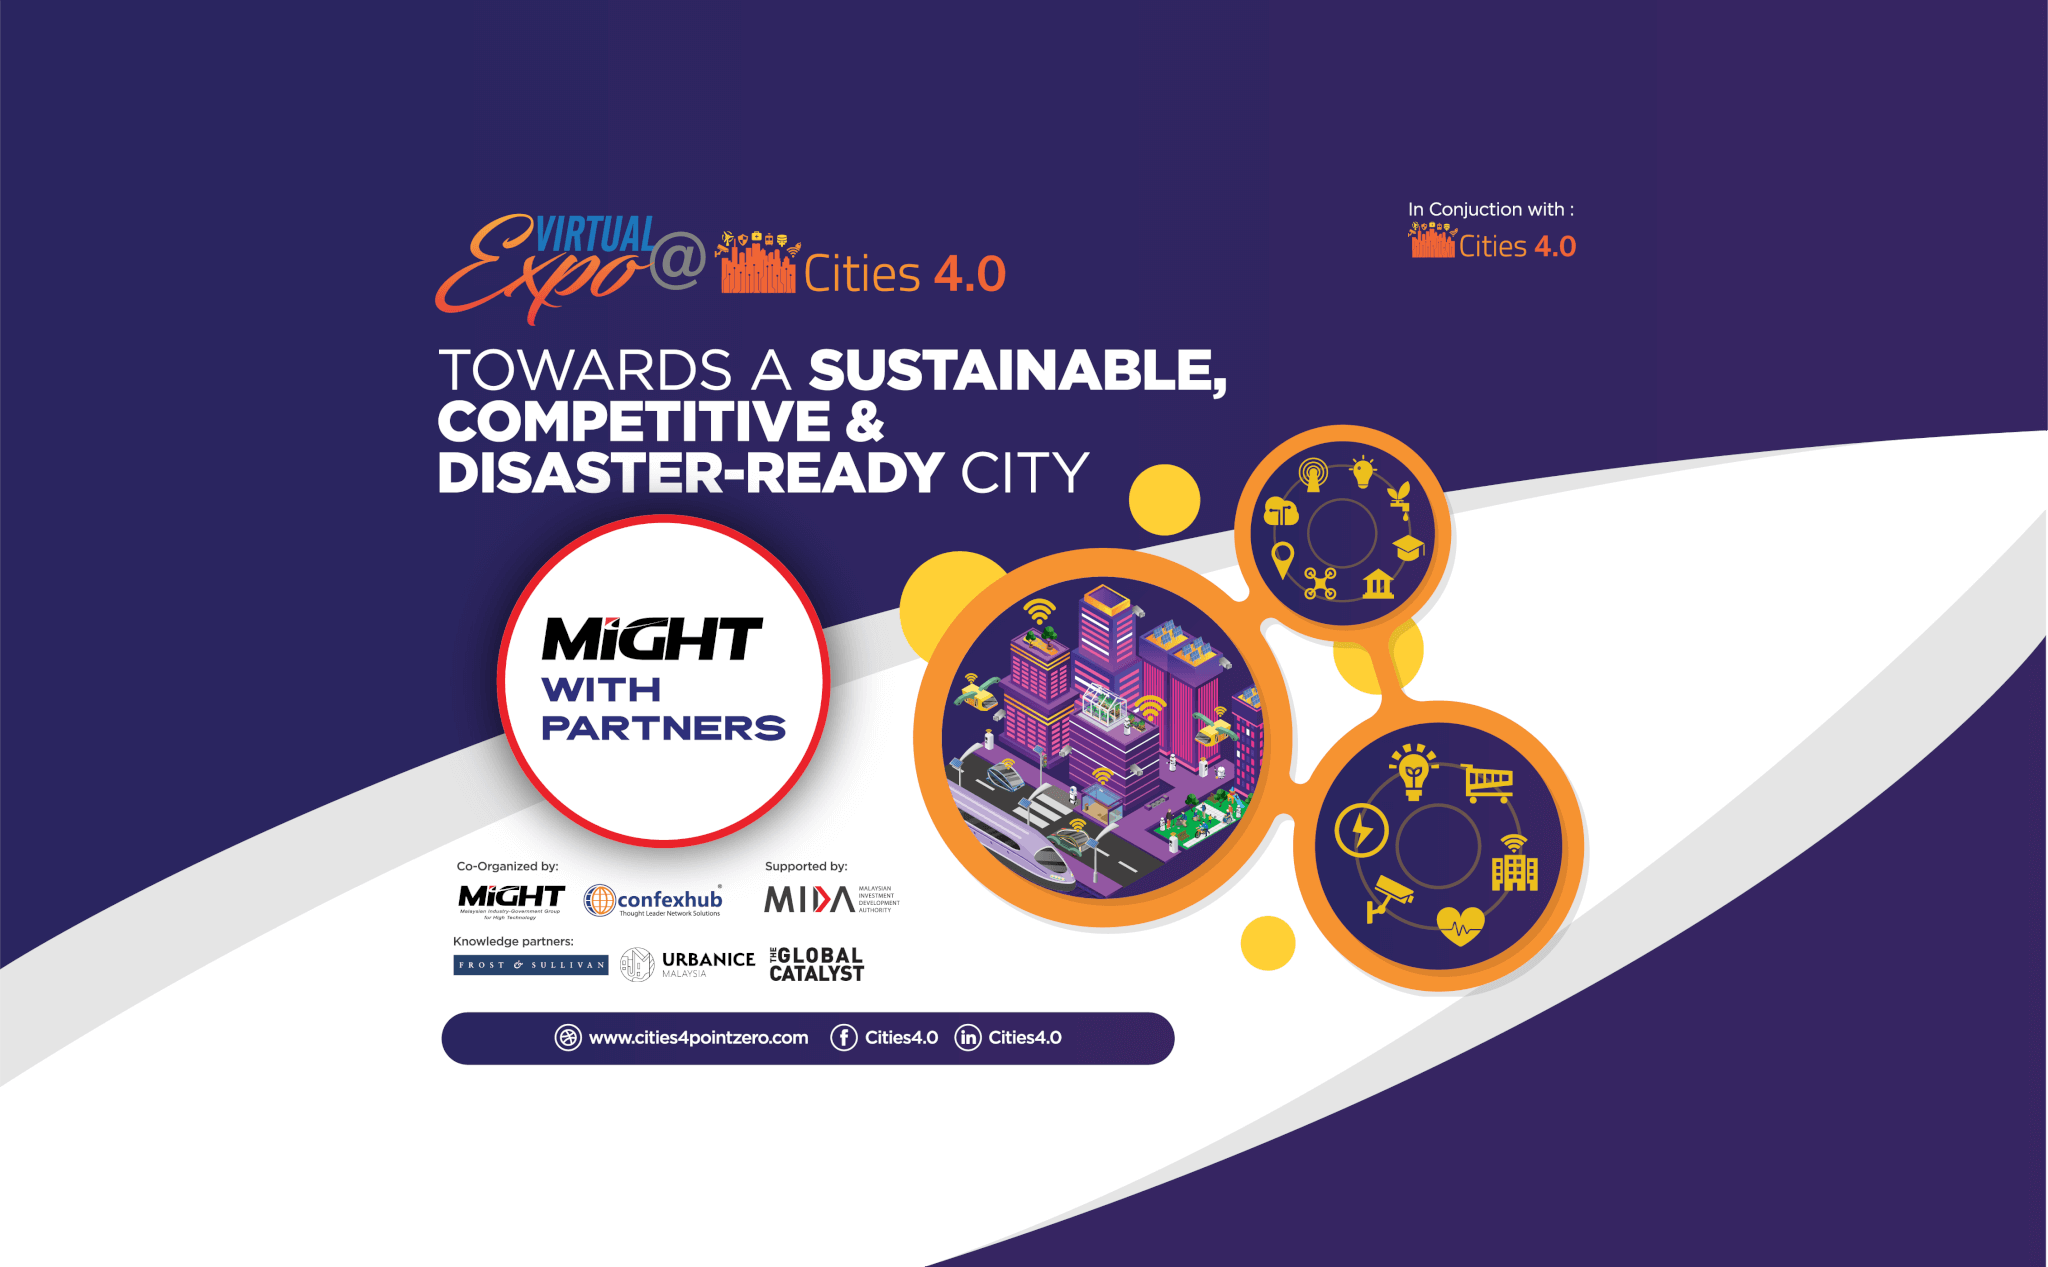 Cities 4.0 Conference and Exhibition 2020